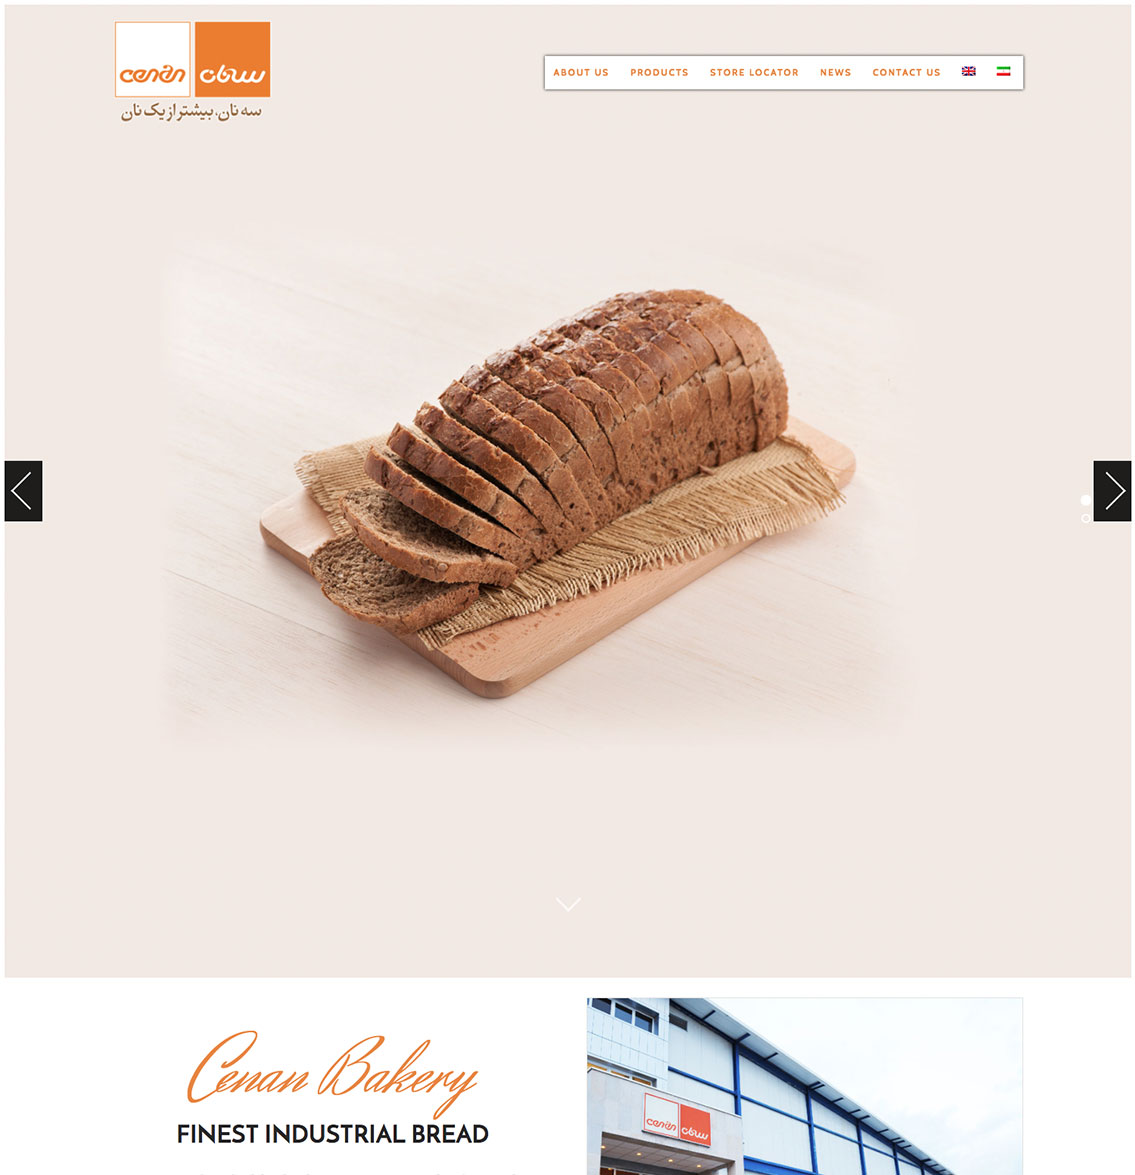 Cenan Bakery Factory